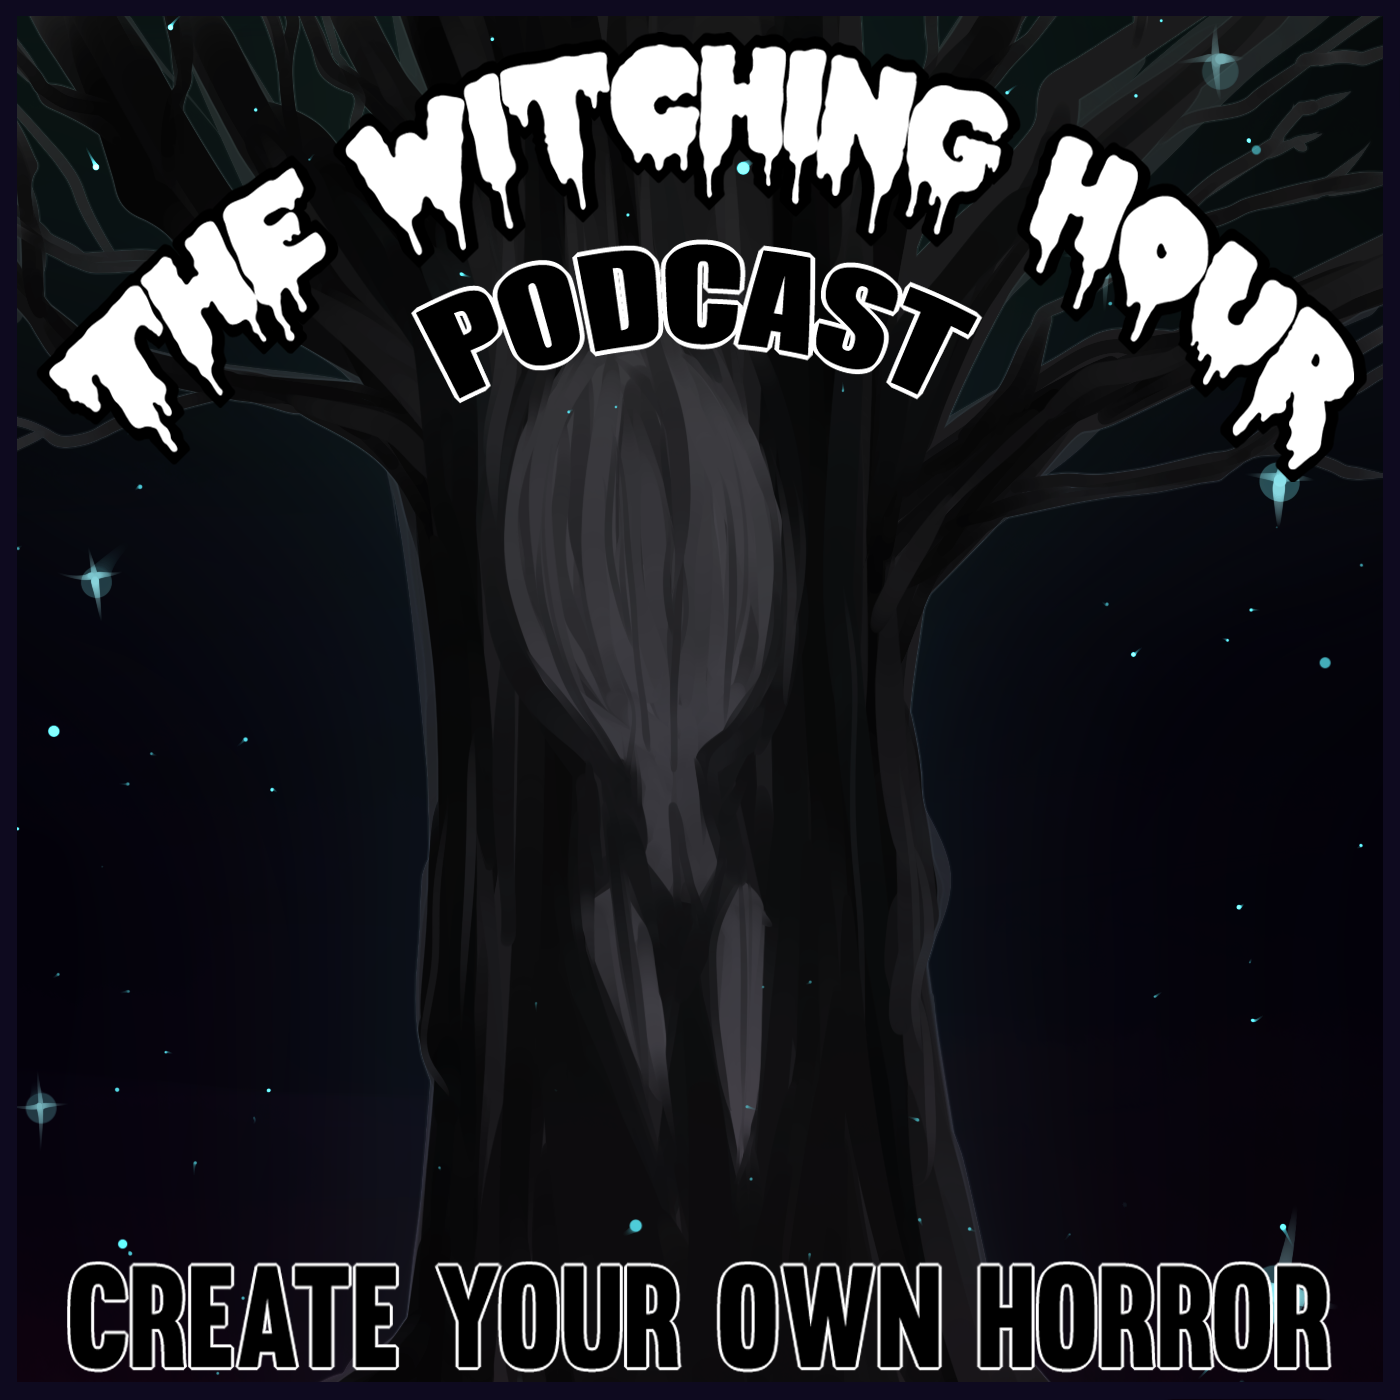 witching_hour_podcast_slender_man_movie_sony_ep60